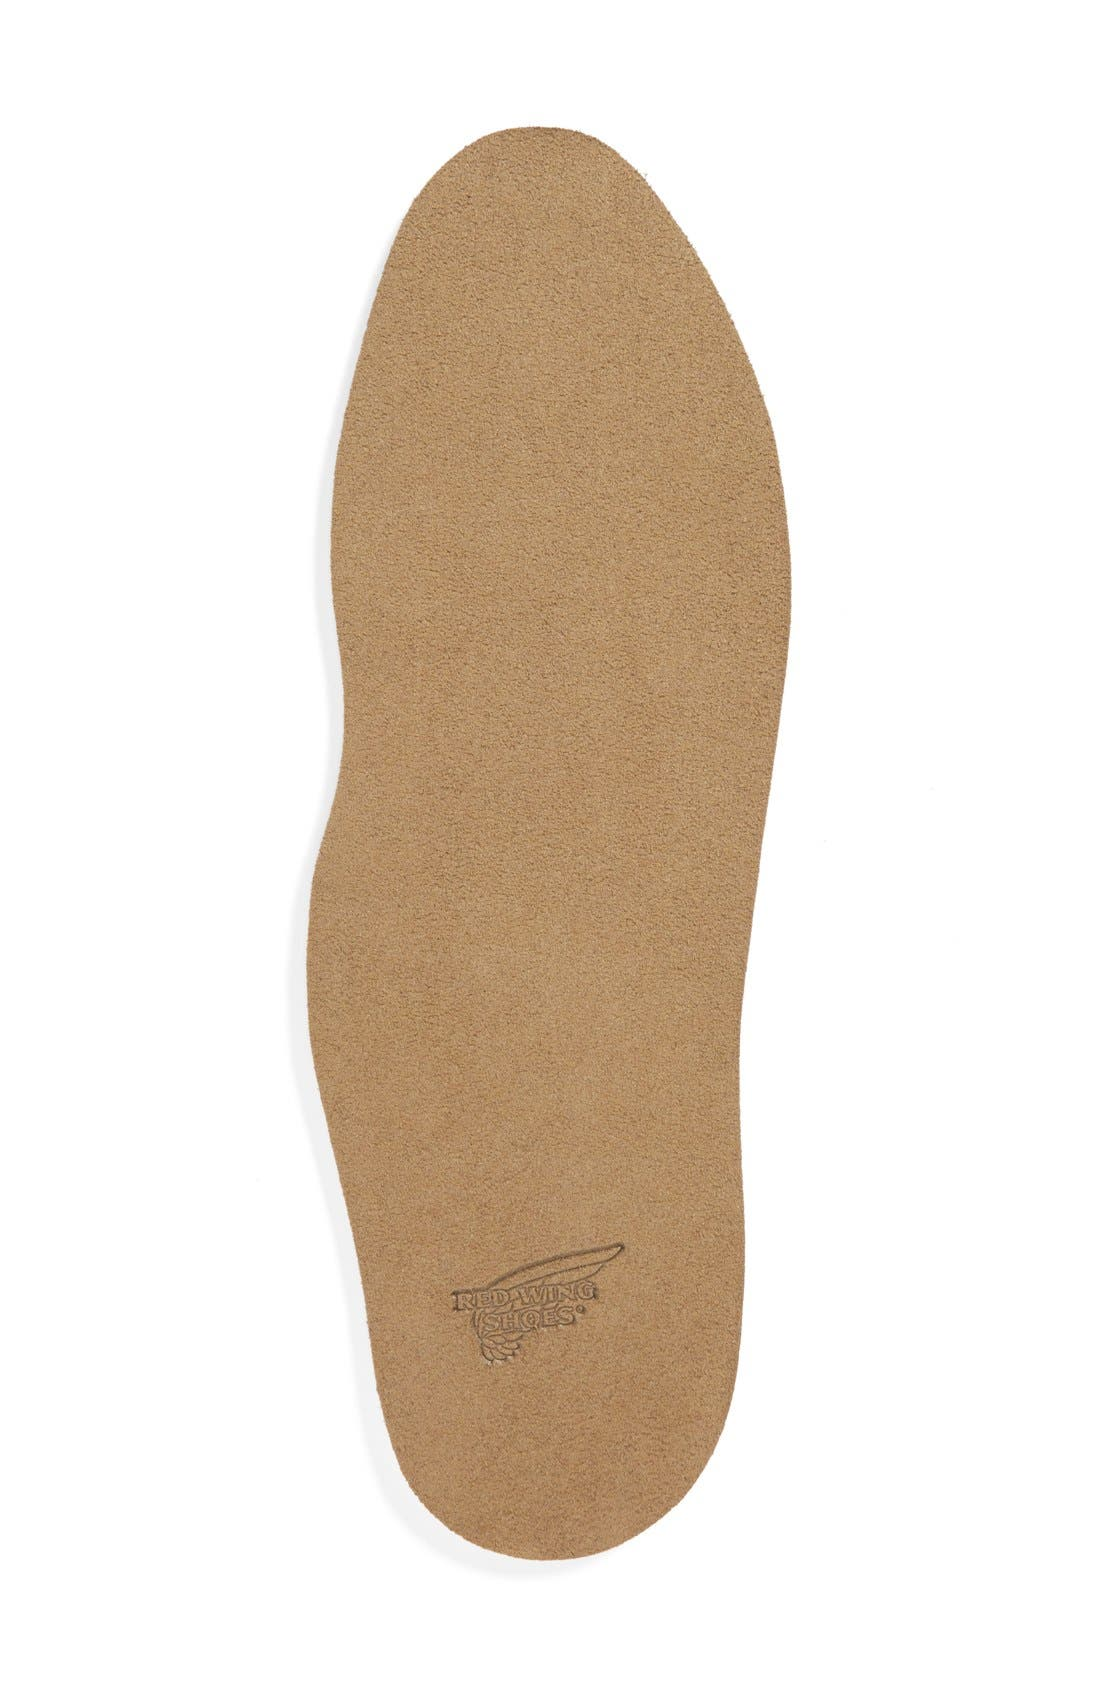 'Shaped Comfort' Insoles,                             Main thumbnail 1, color,                             BROWN